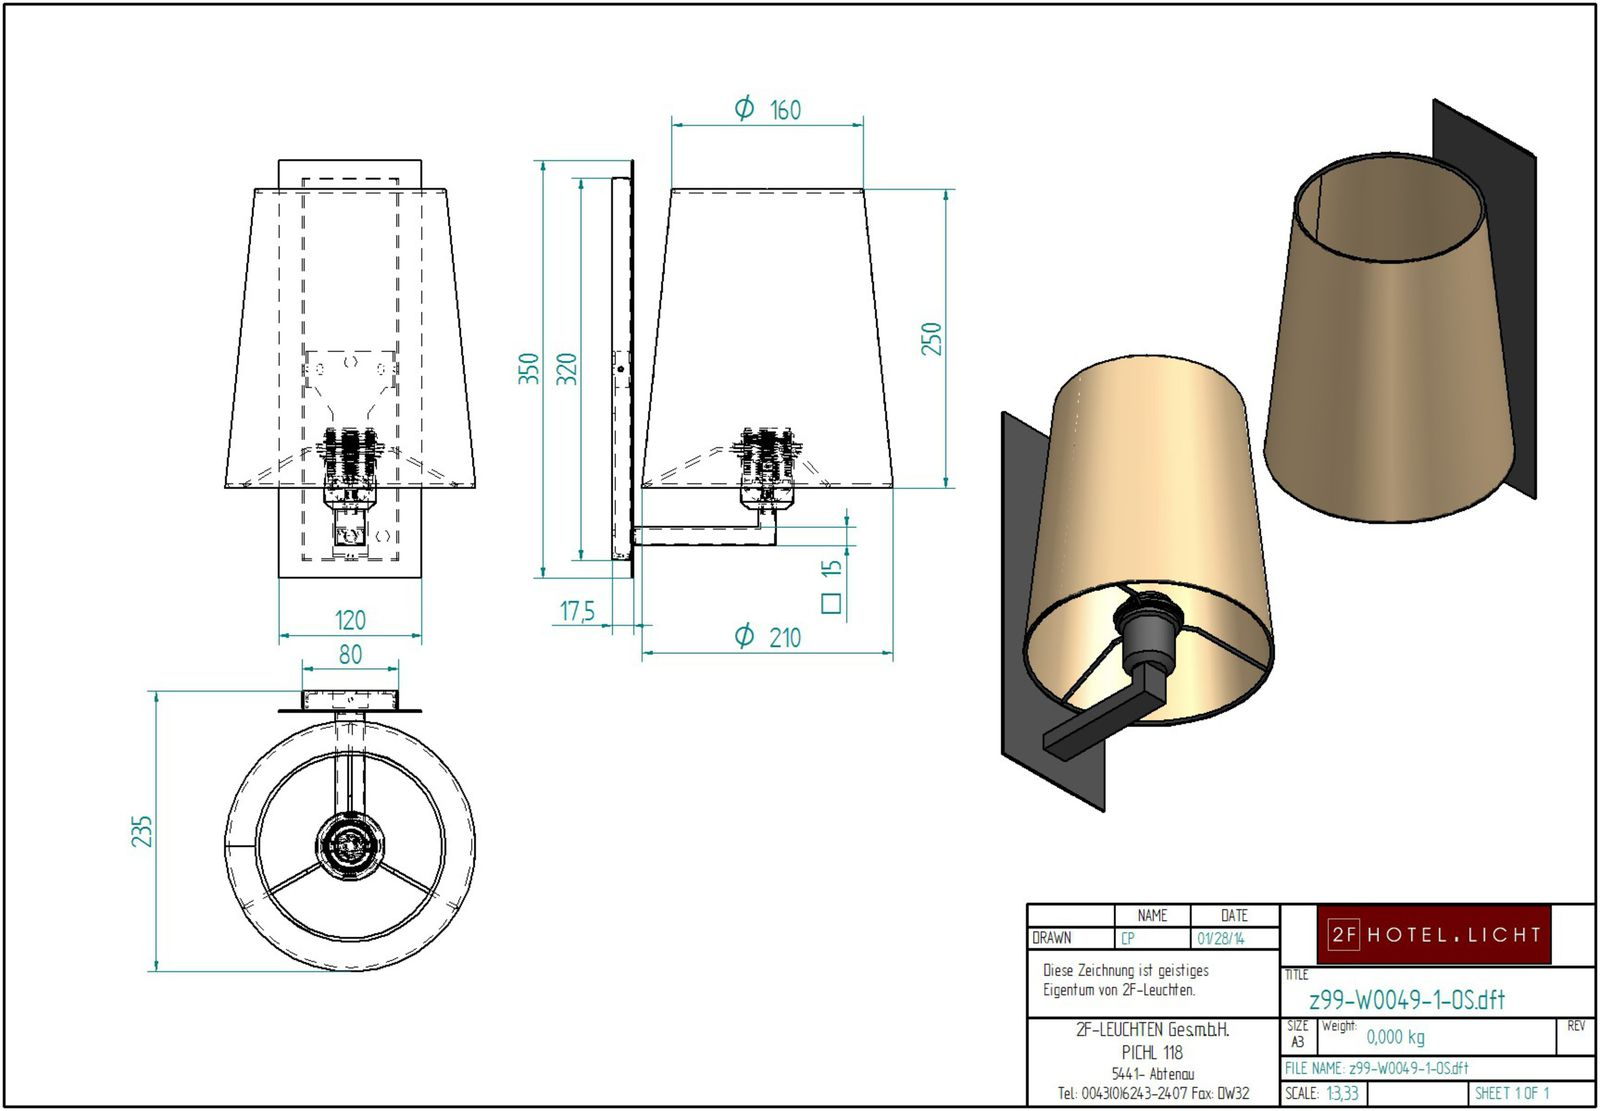 wall lamp, measure: 210mmx320mmx235mm, surface: black wrought iron, techn. details: 1xE27, 42W